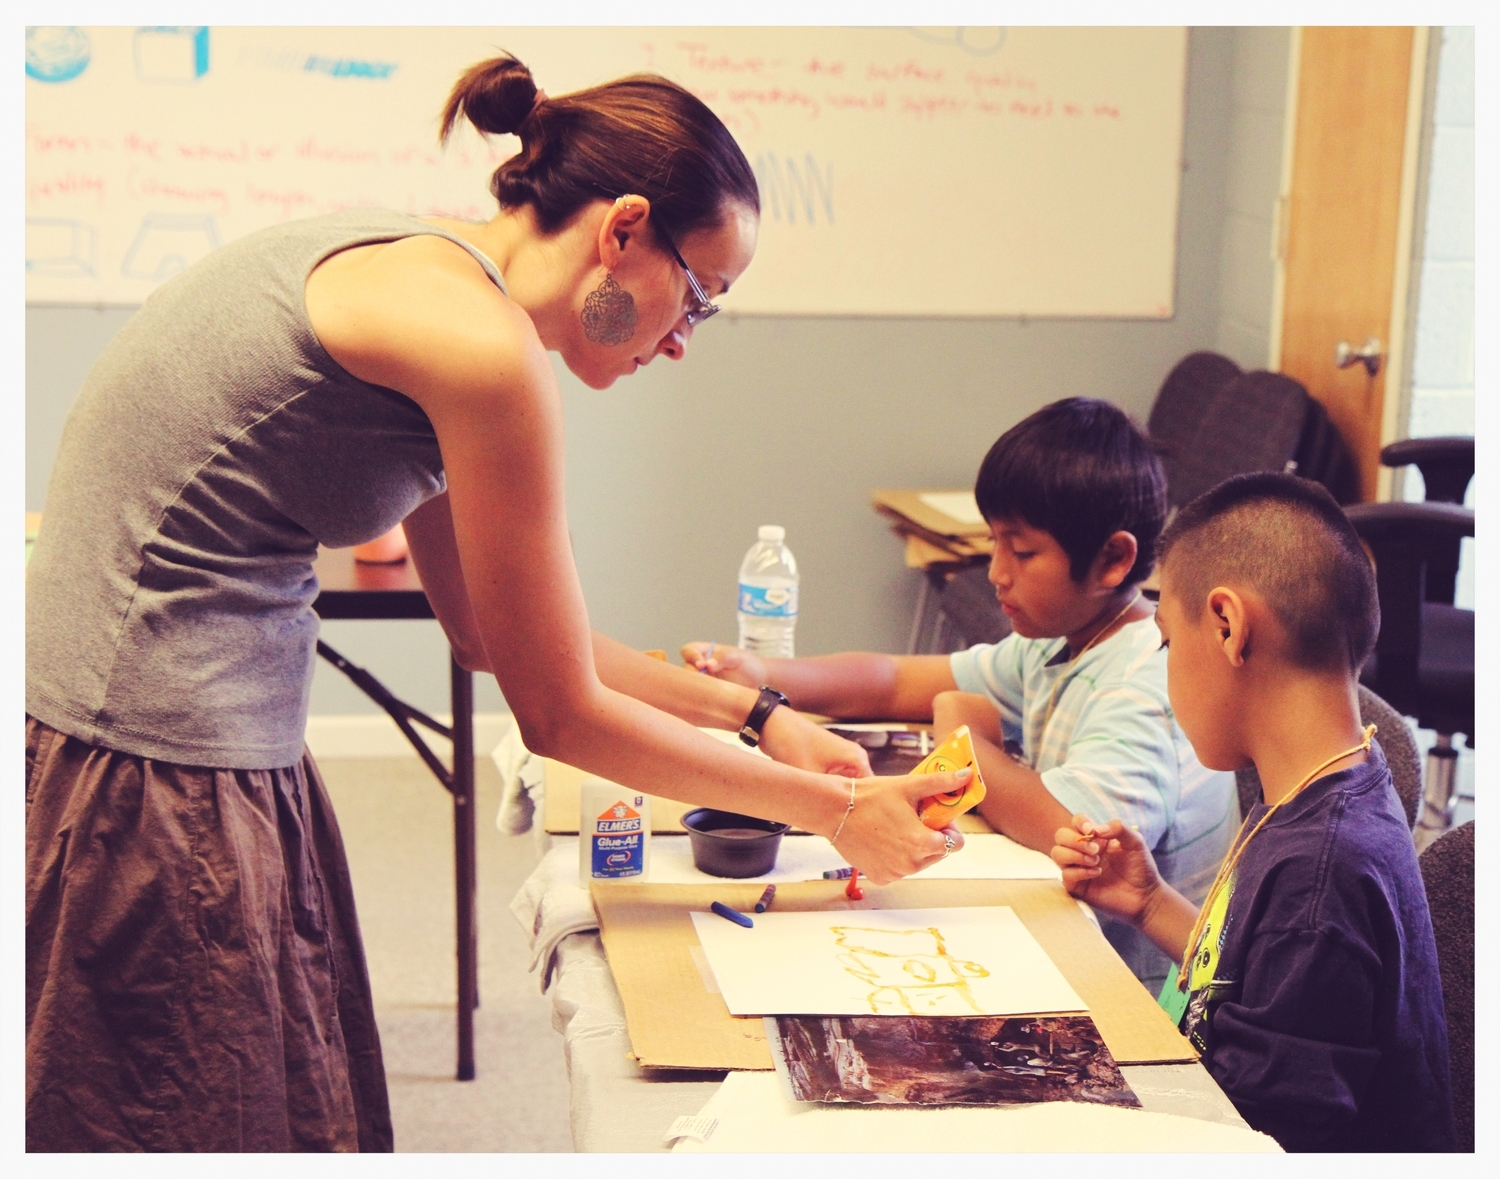 Summer Intern Stephany Dailey helps enable children to express their creative abilities through an art project.